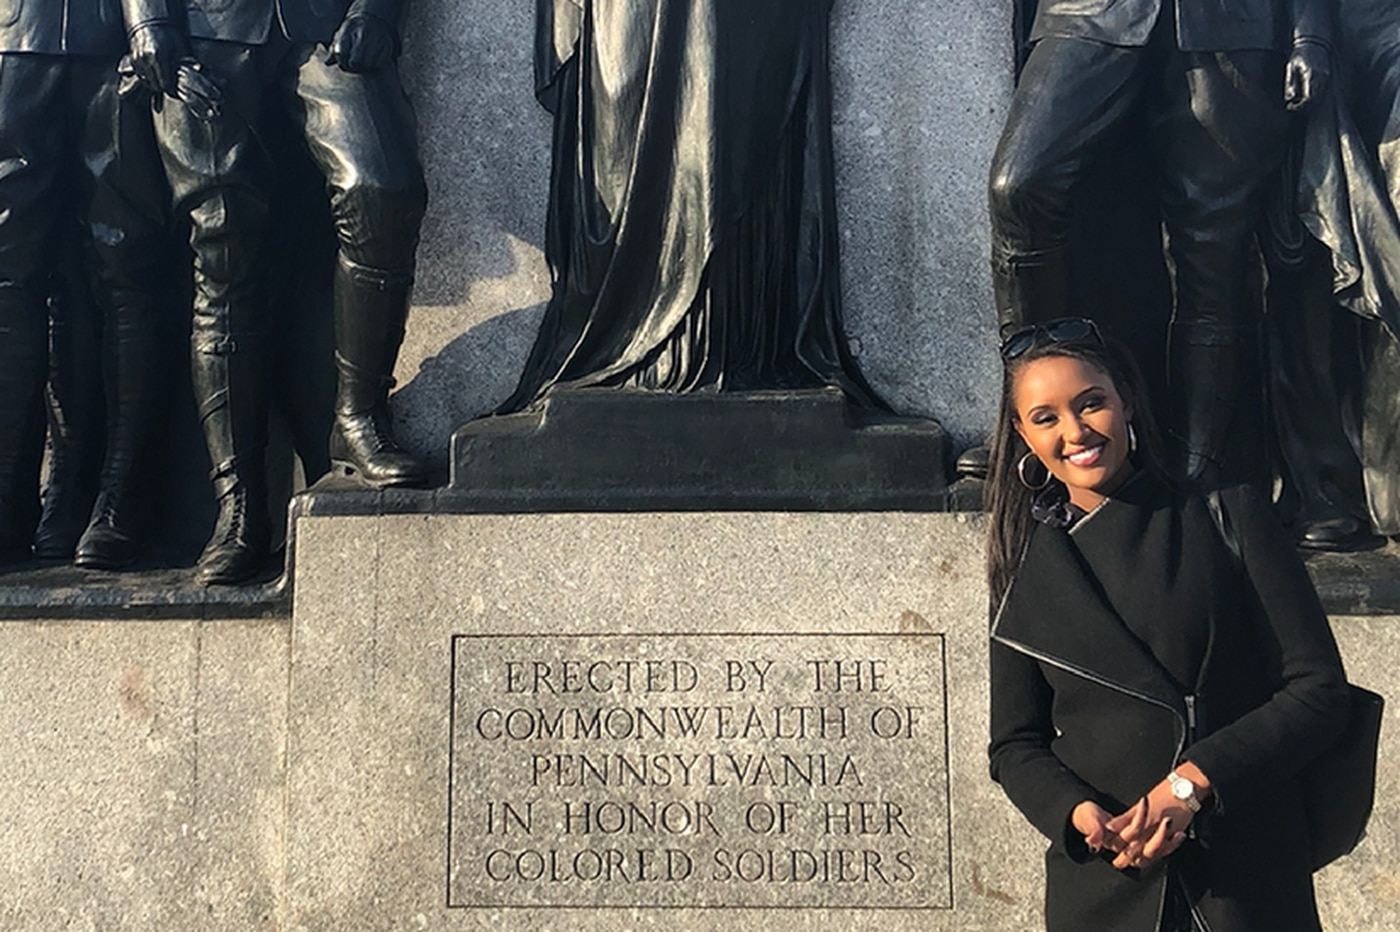 Black History Month: CBS 3's Rahel Solomon reflects on importance of black role models - and 'Black Panther'